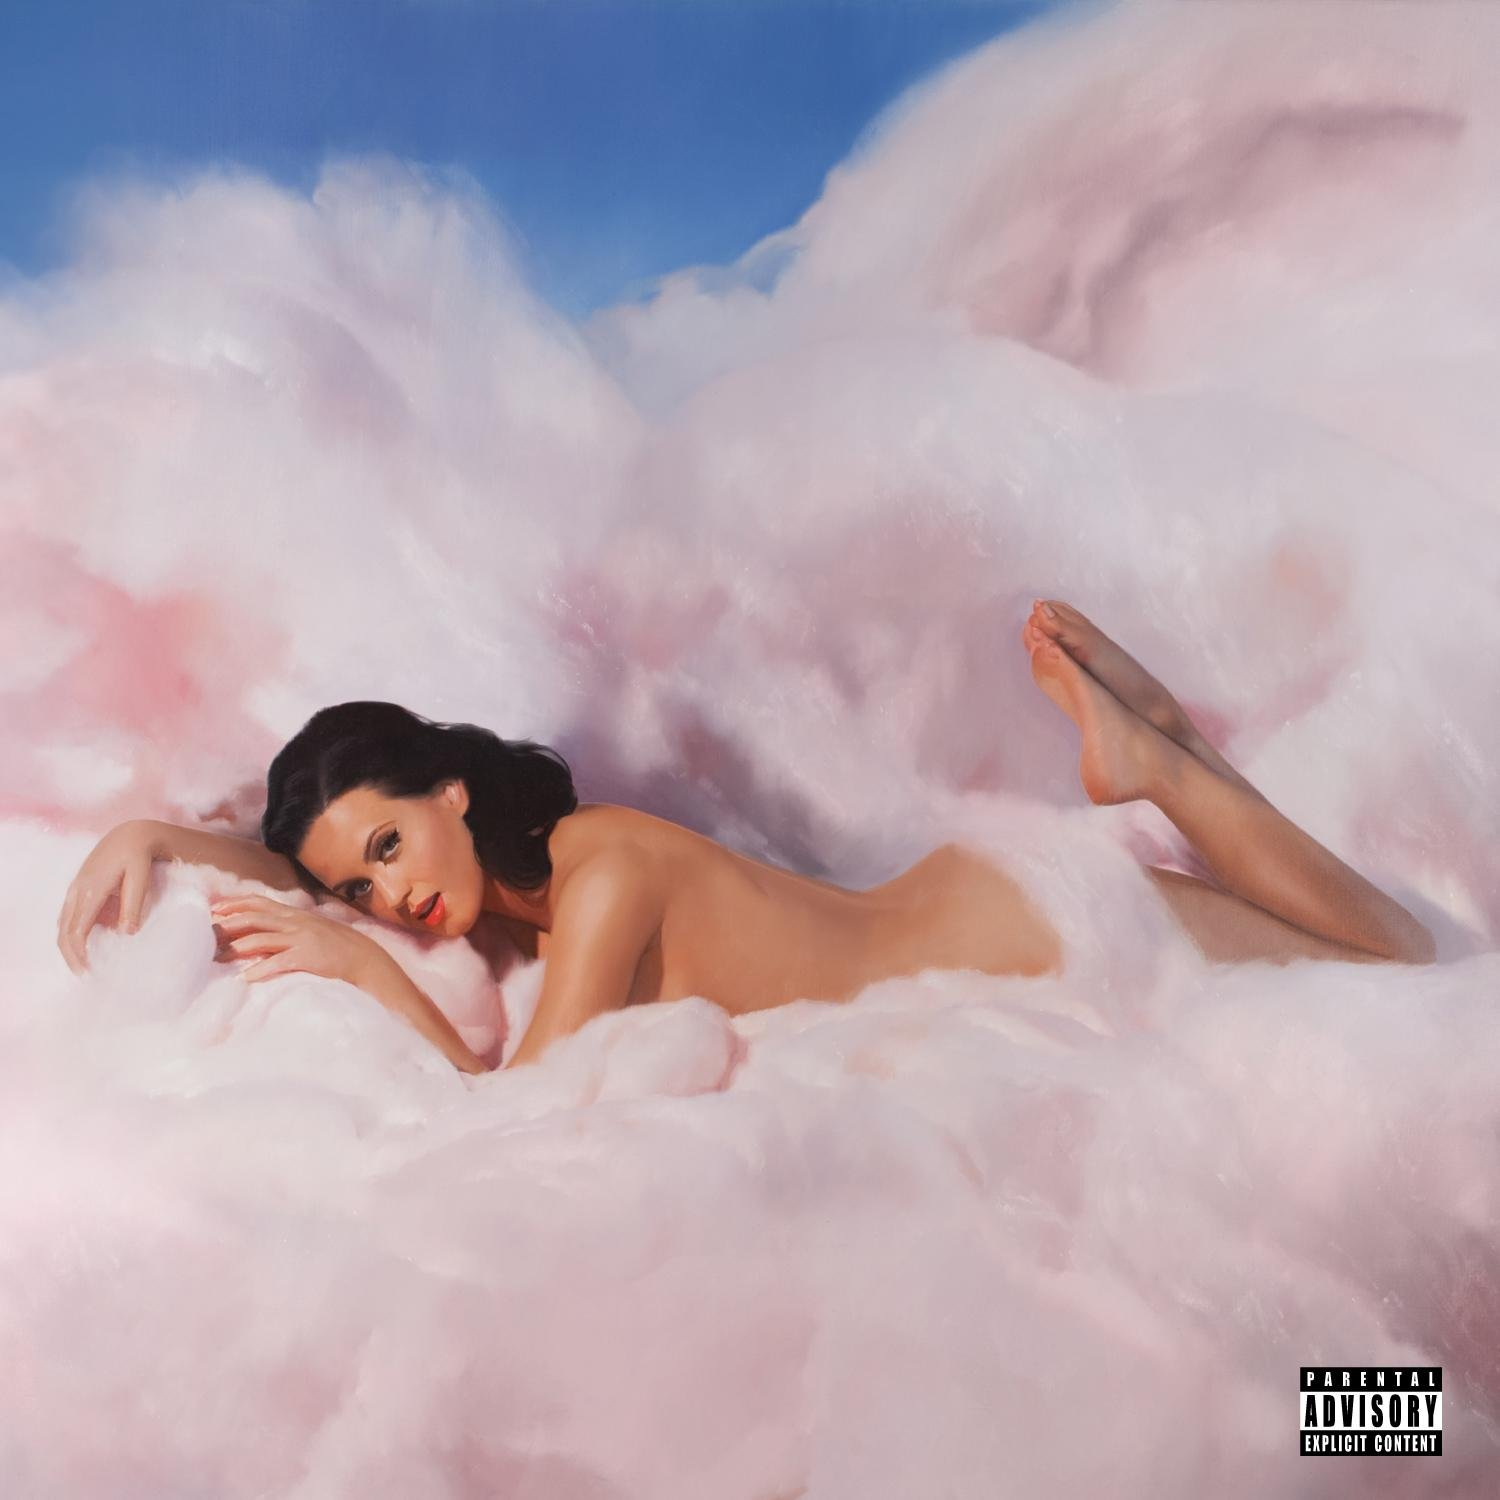 Teenage Dream by Capitol